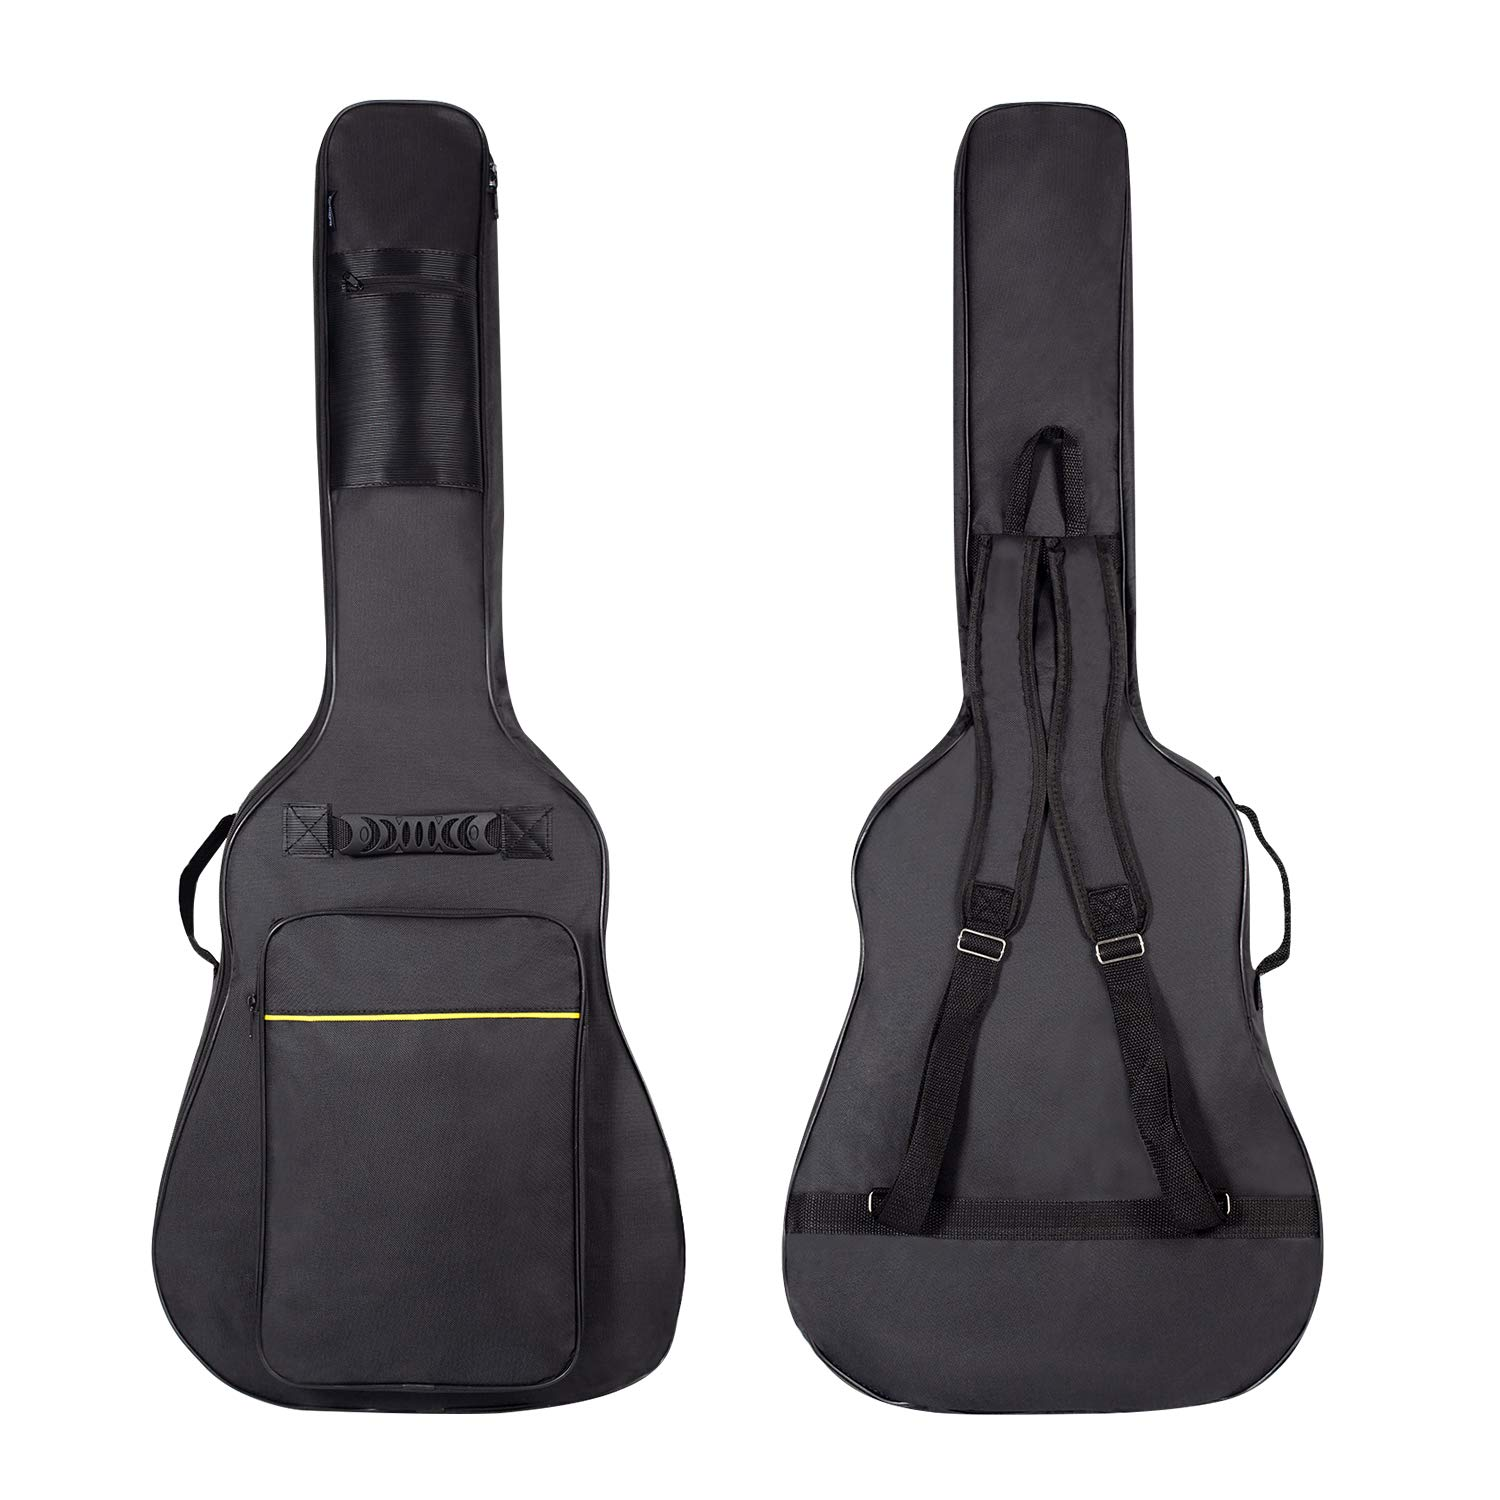 CAHAYA [Upgraded Version] 41 Inch Acoustic Guitar Bag 0.3 Inch Thick Padding Waterproof Dual Adjustable Shoulder Strap Guitar Case Gig Bag with Back Hanger Loop - Black by CAHAYA